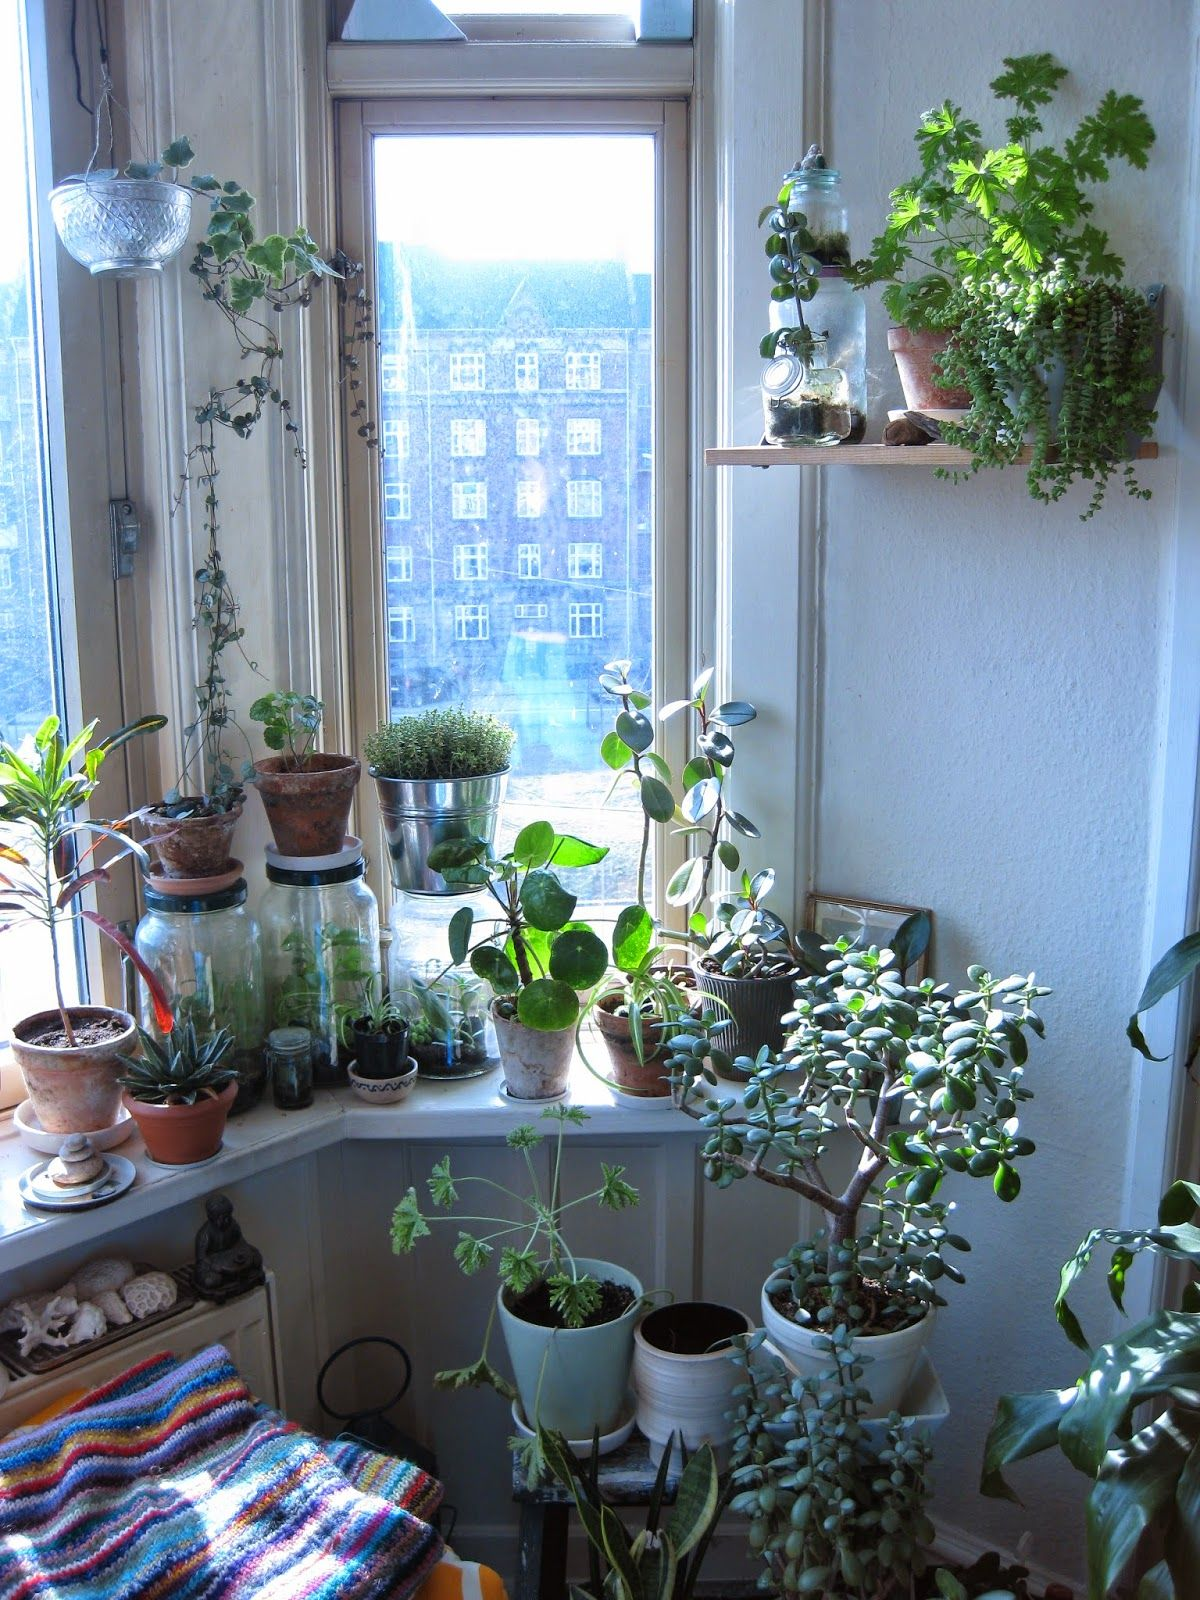 a kitchen bursting with houseplants | FLOWERS - nature, plants ...